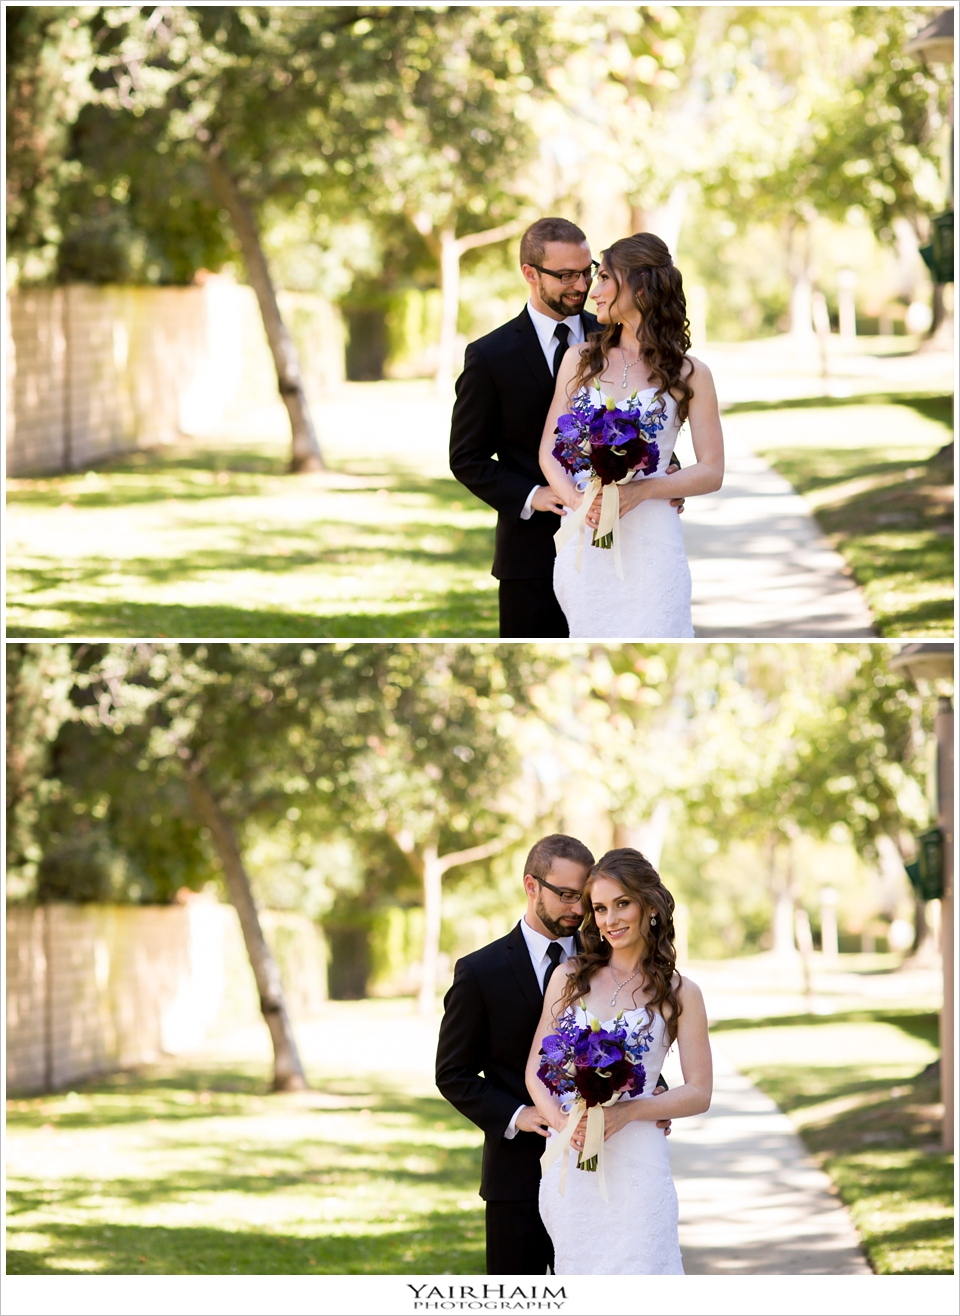 Hyatt-Westlake-Plaza-wedding-photos-Yair-Haim-Photography-10